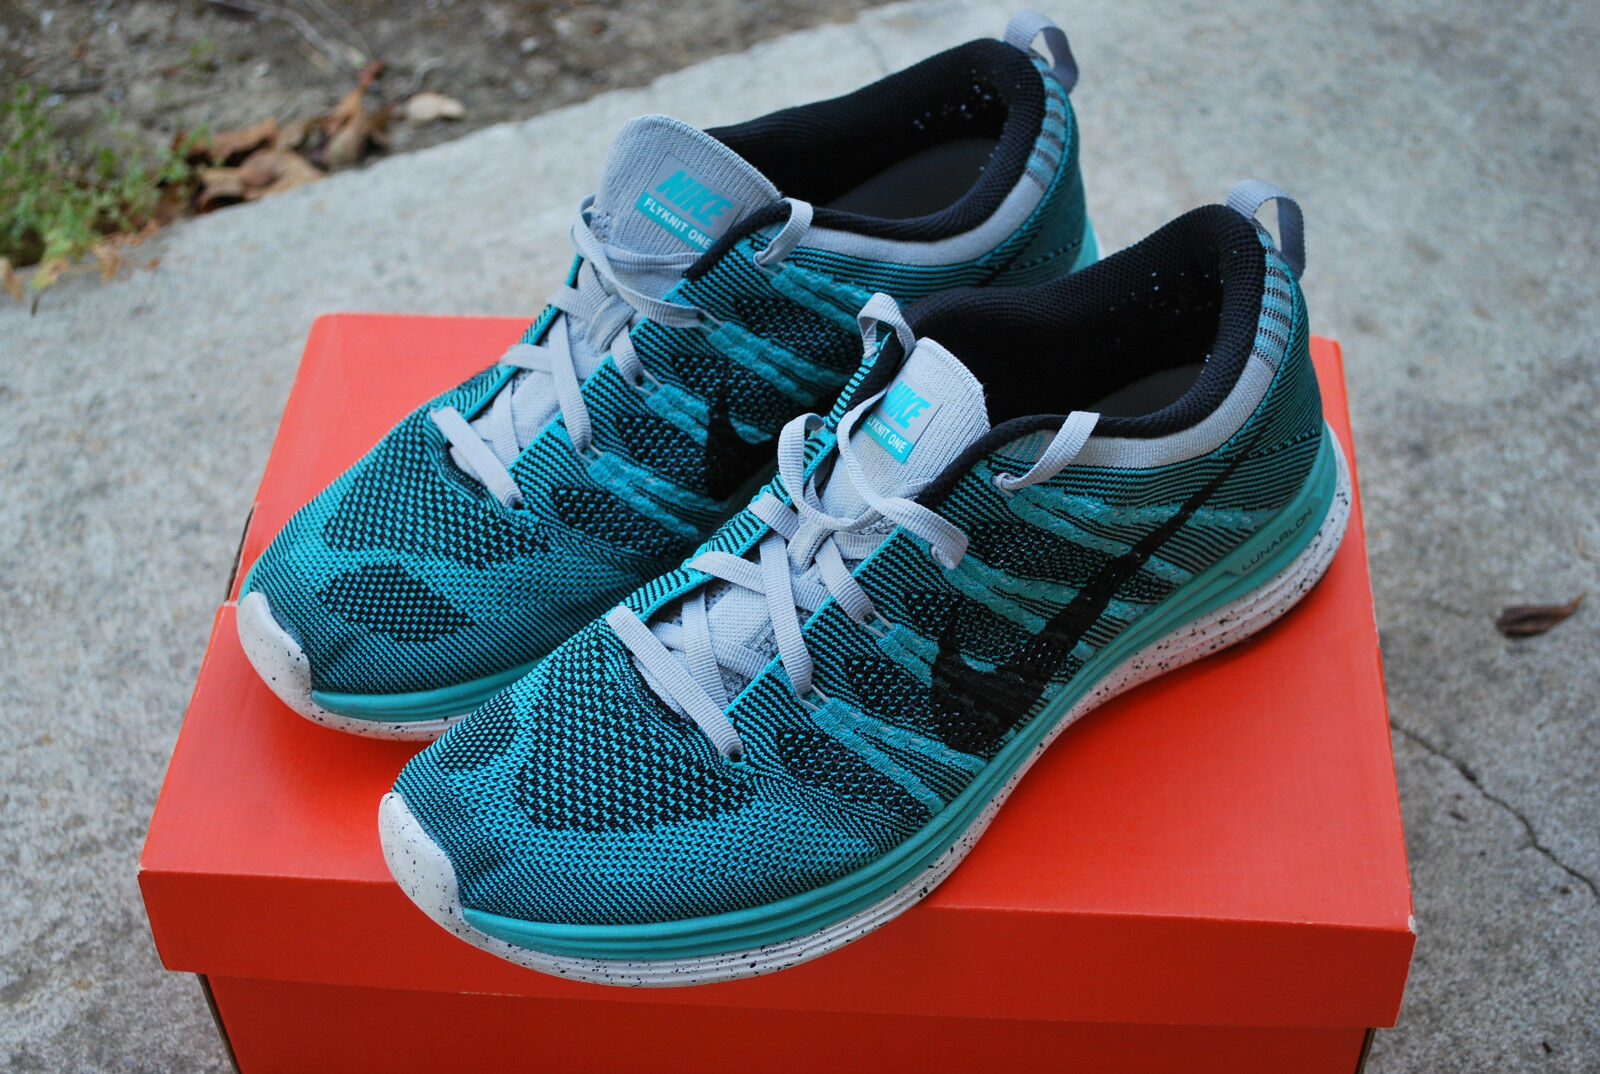 USED NIKE 554887-301 FLYKNIT ONE+ SPORT TURQUOISE/BLACK/WOLF 554887-301 NIKE - SIZE 10.5 3a5f7c